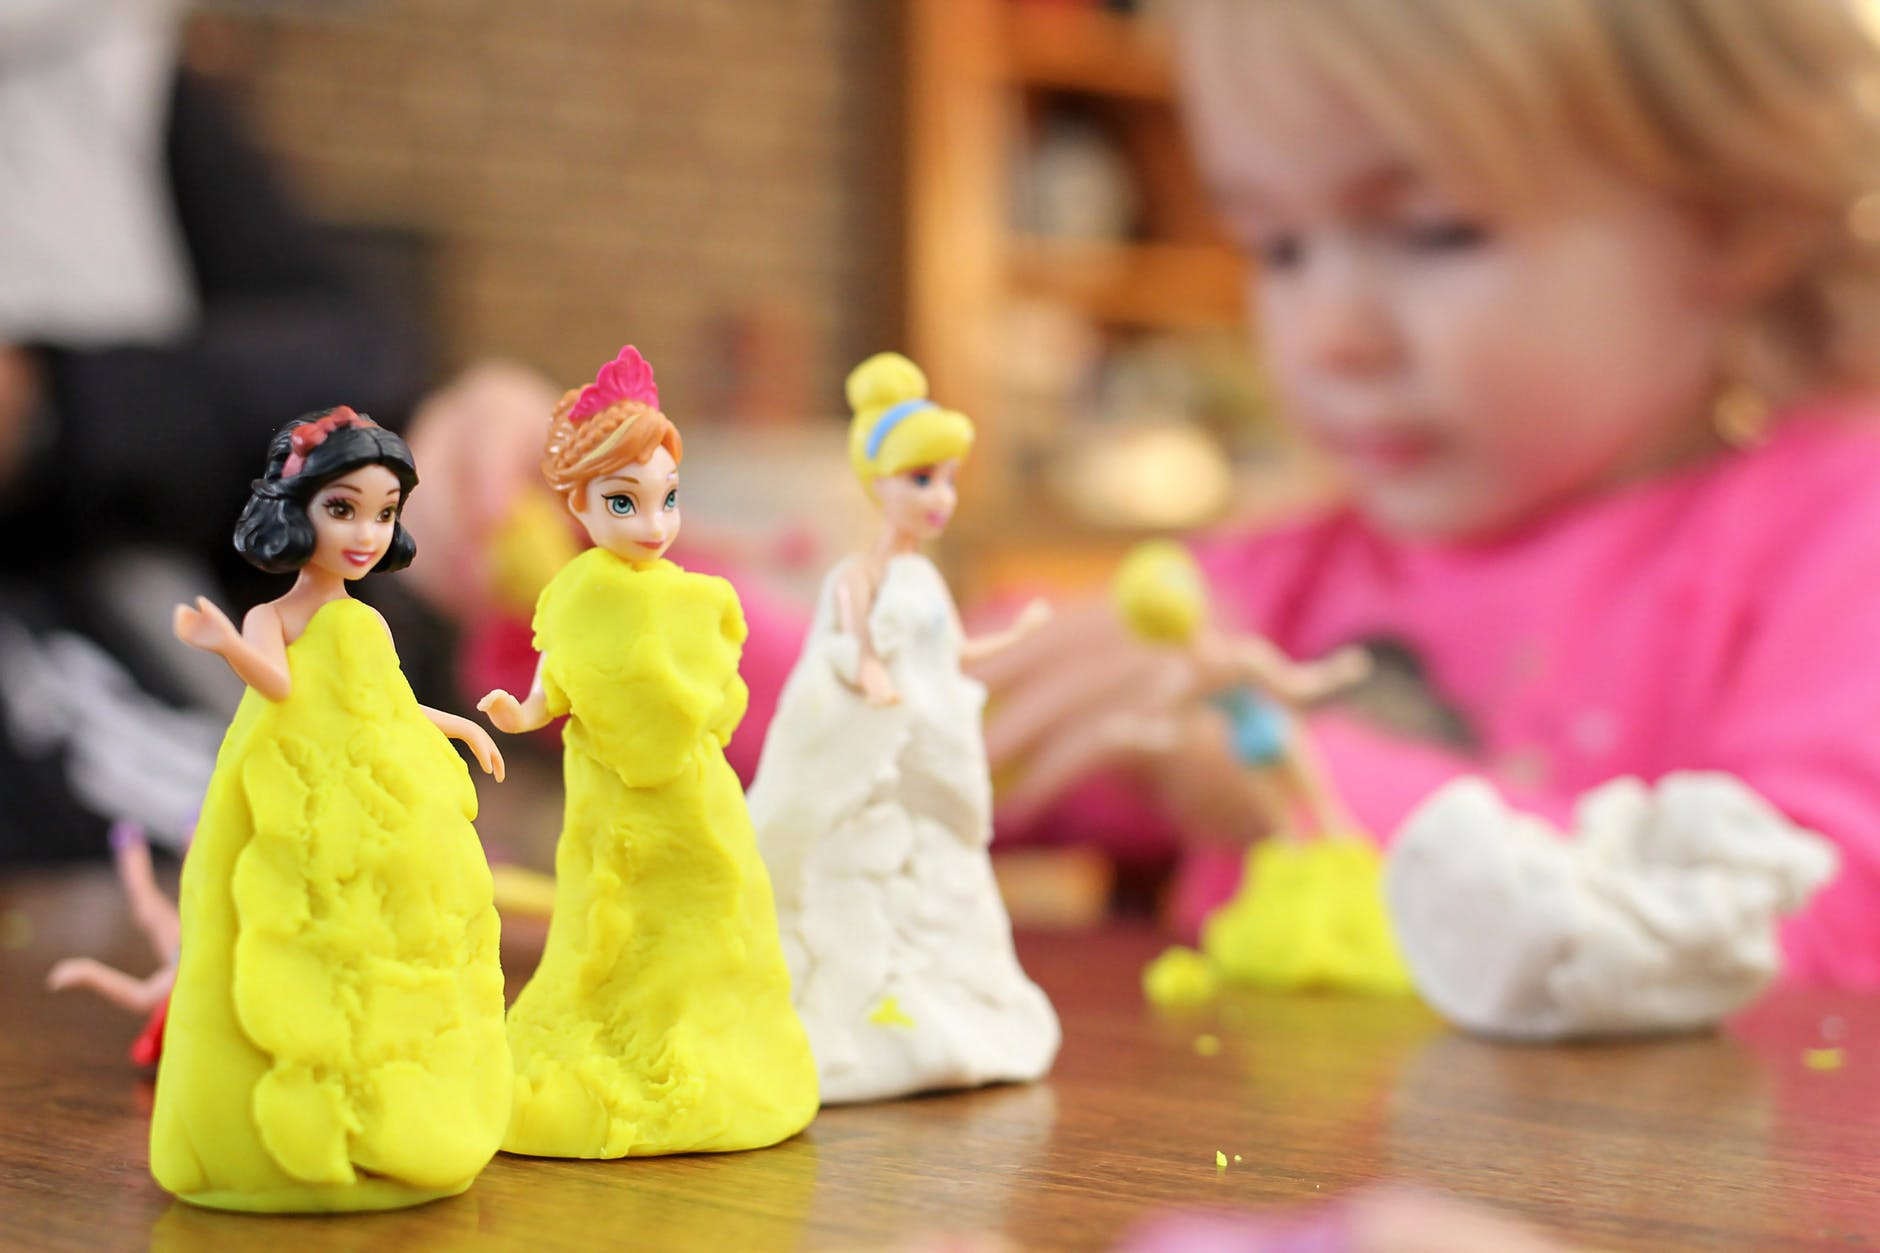 Child molds princess bodies out of clay.